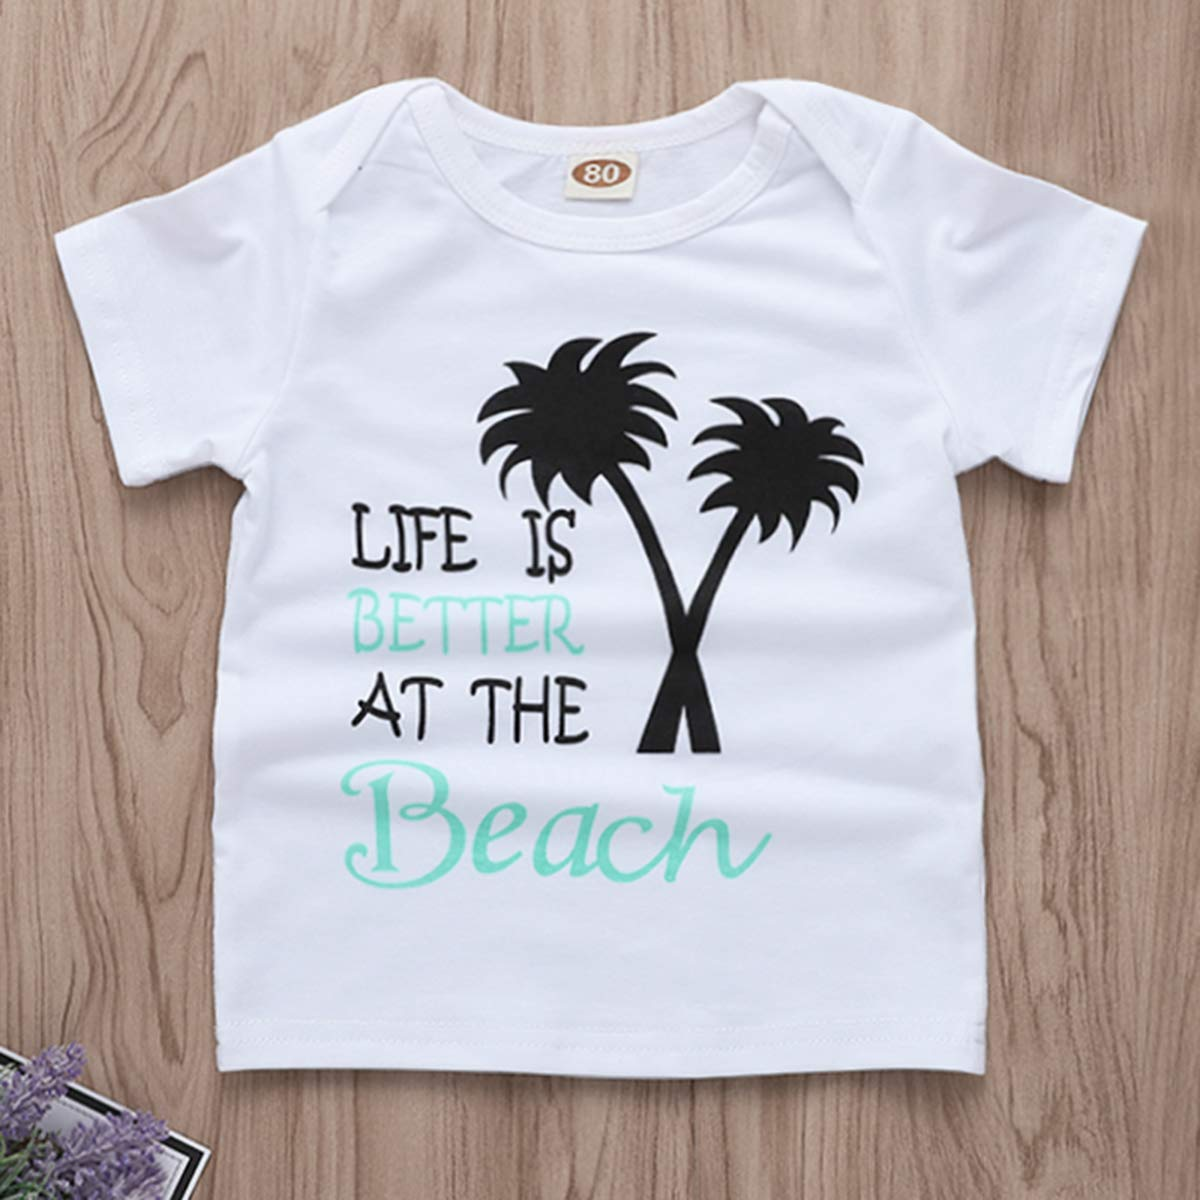 Infant Toddler Baby Boys Girls Letter Print Tops Shirt Shorts Outfit Clothes Set